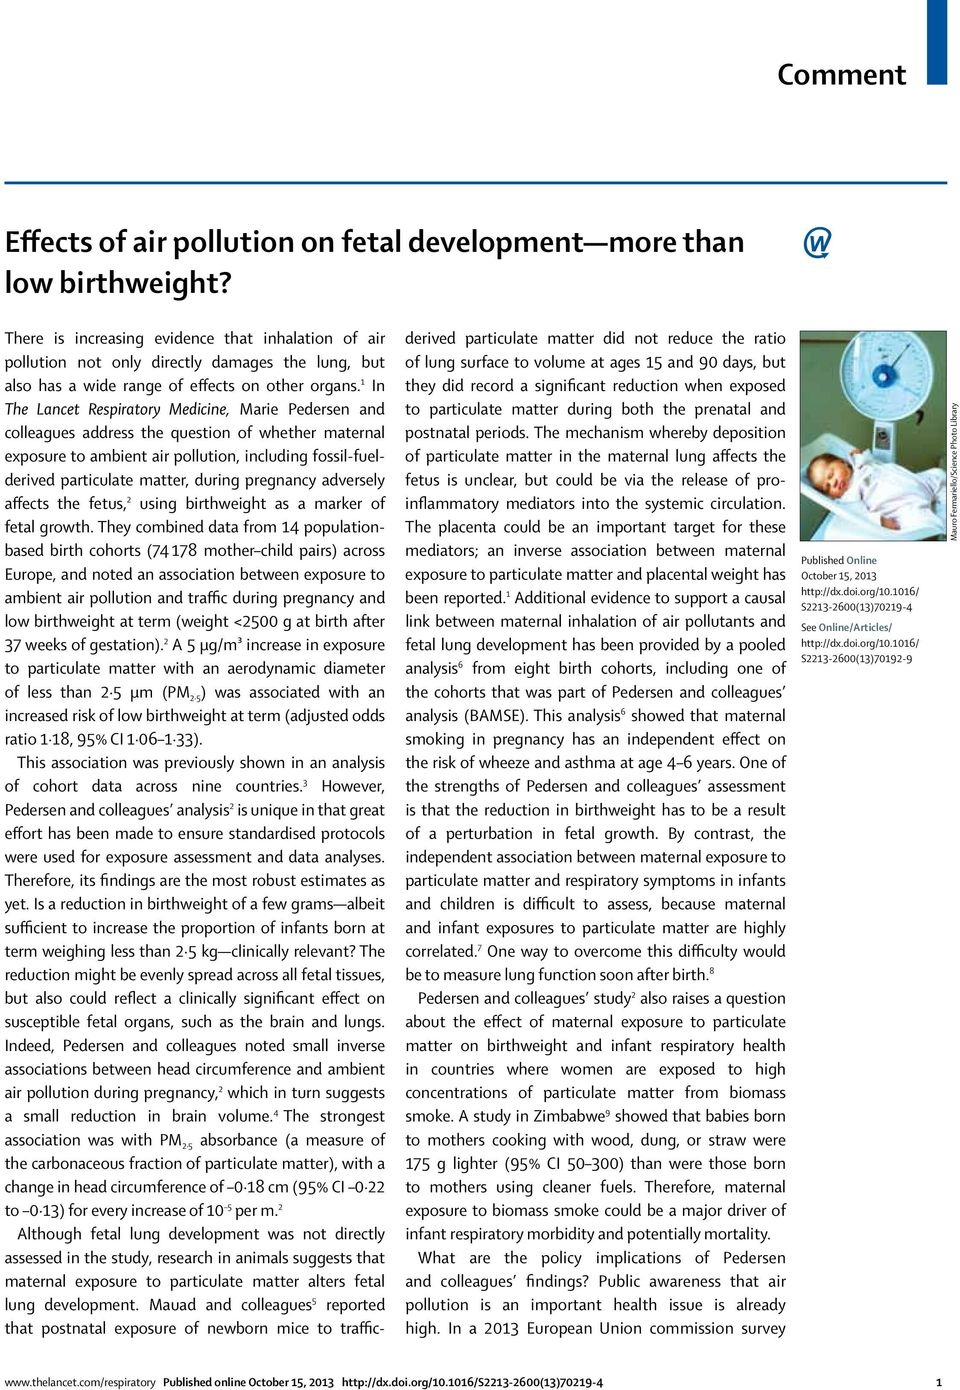 1 In The Lancet Respiratory Medicine, Marie Pedersen and colleagues address the question of whether maternal exposure to ambient air pollution, including fossil-fuelderived particulate matter, during